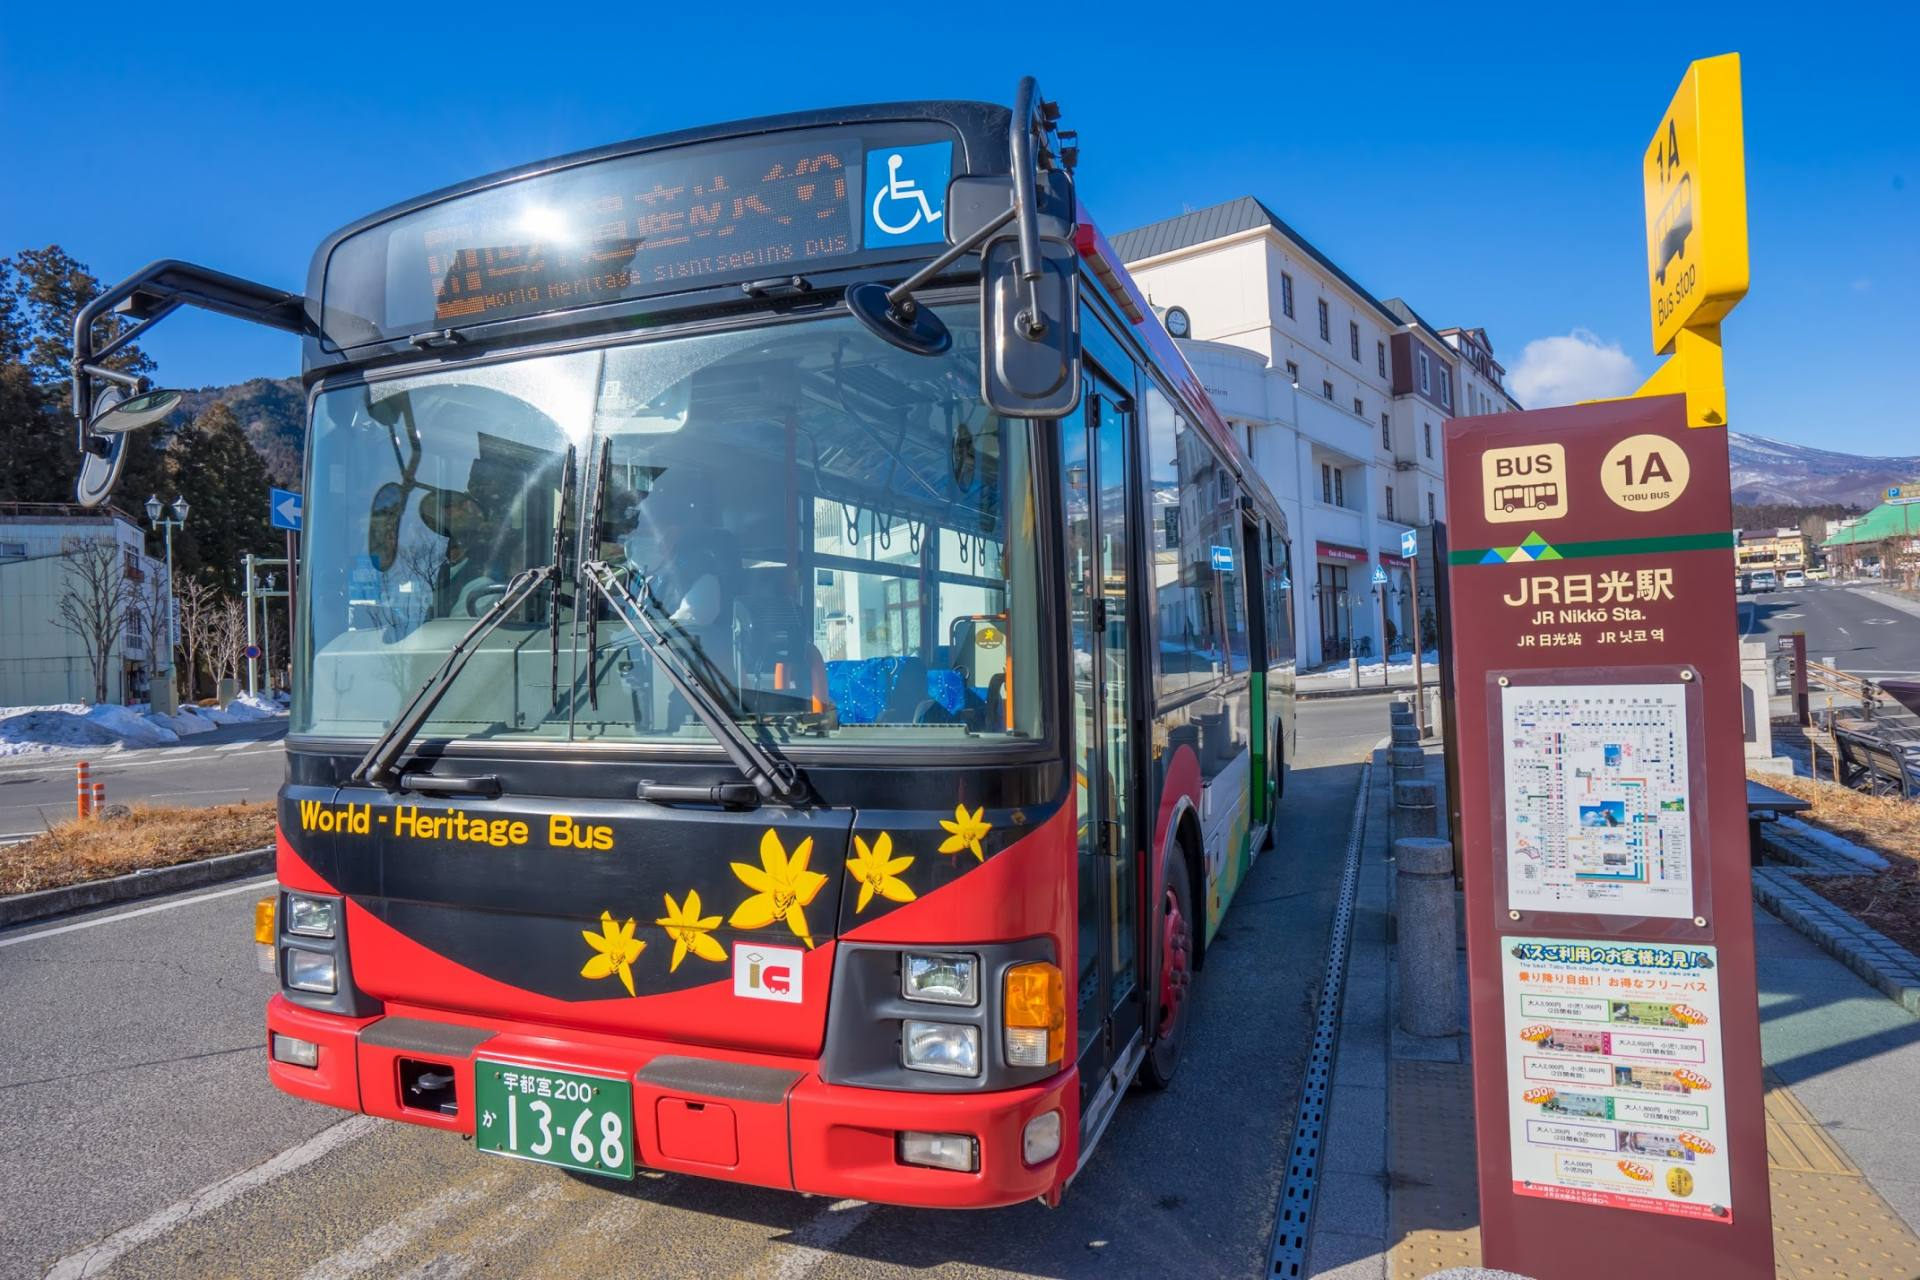 World Heritage Sightseeing Bus